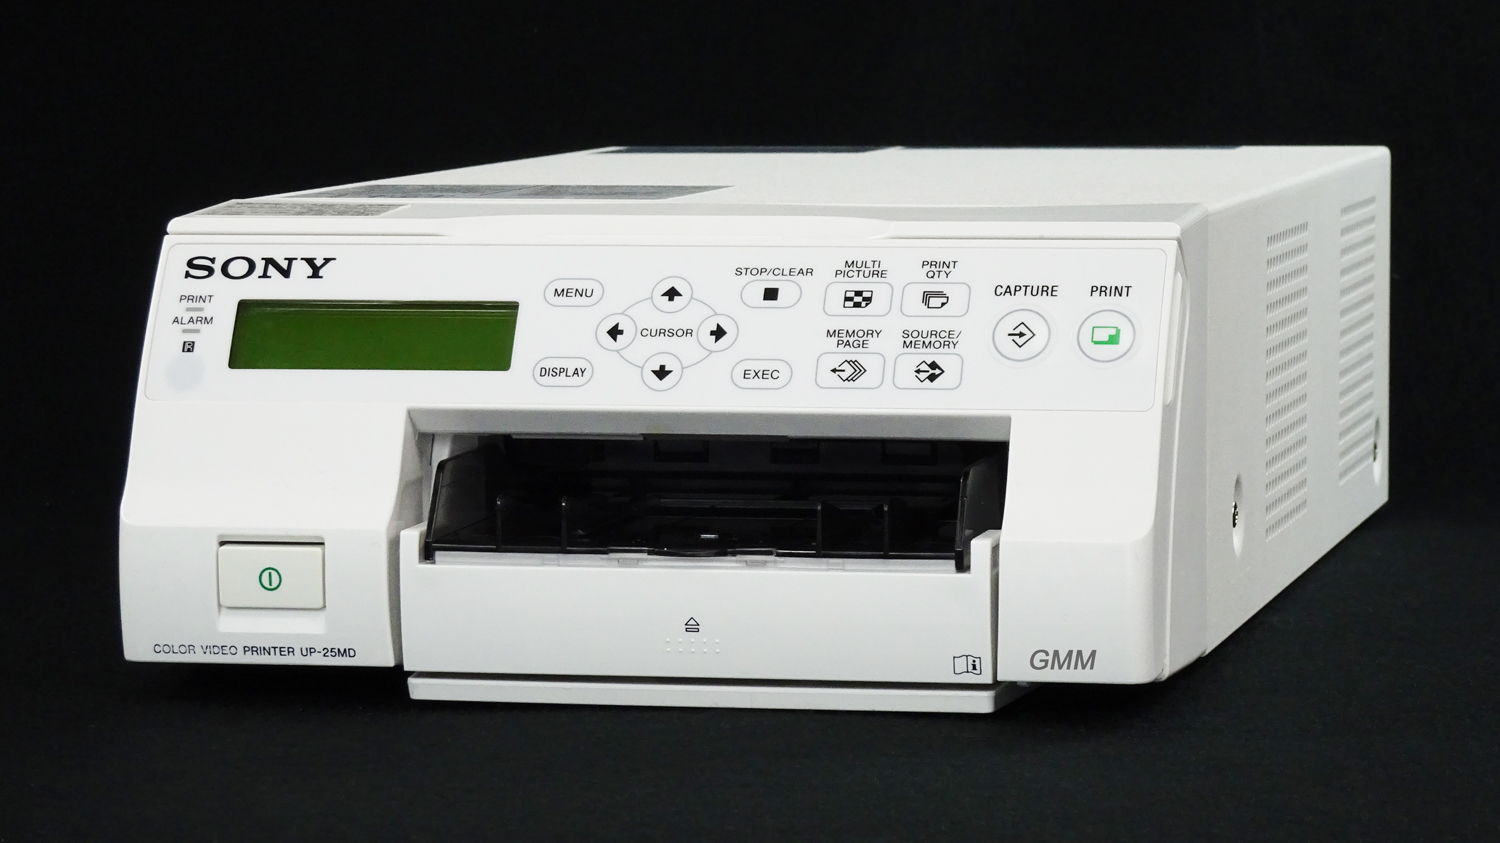 SONY Color Video Printer UP-25MD - Austausch